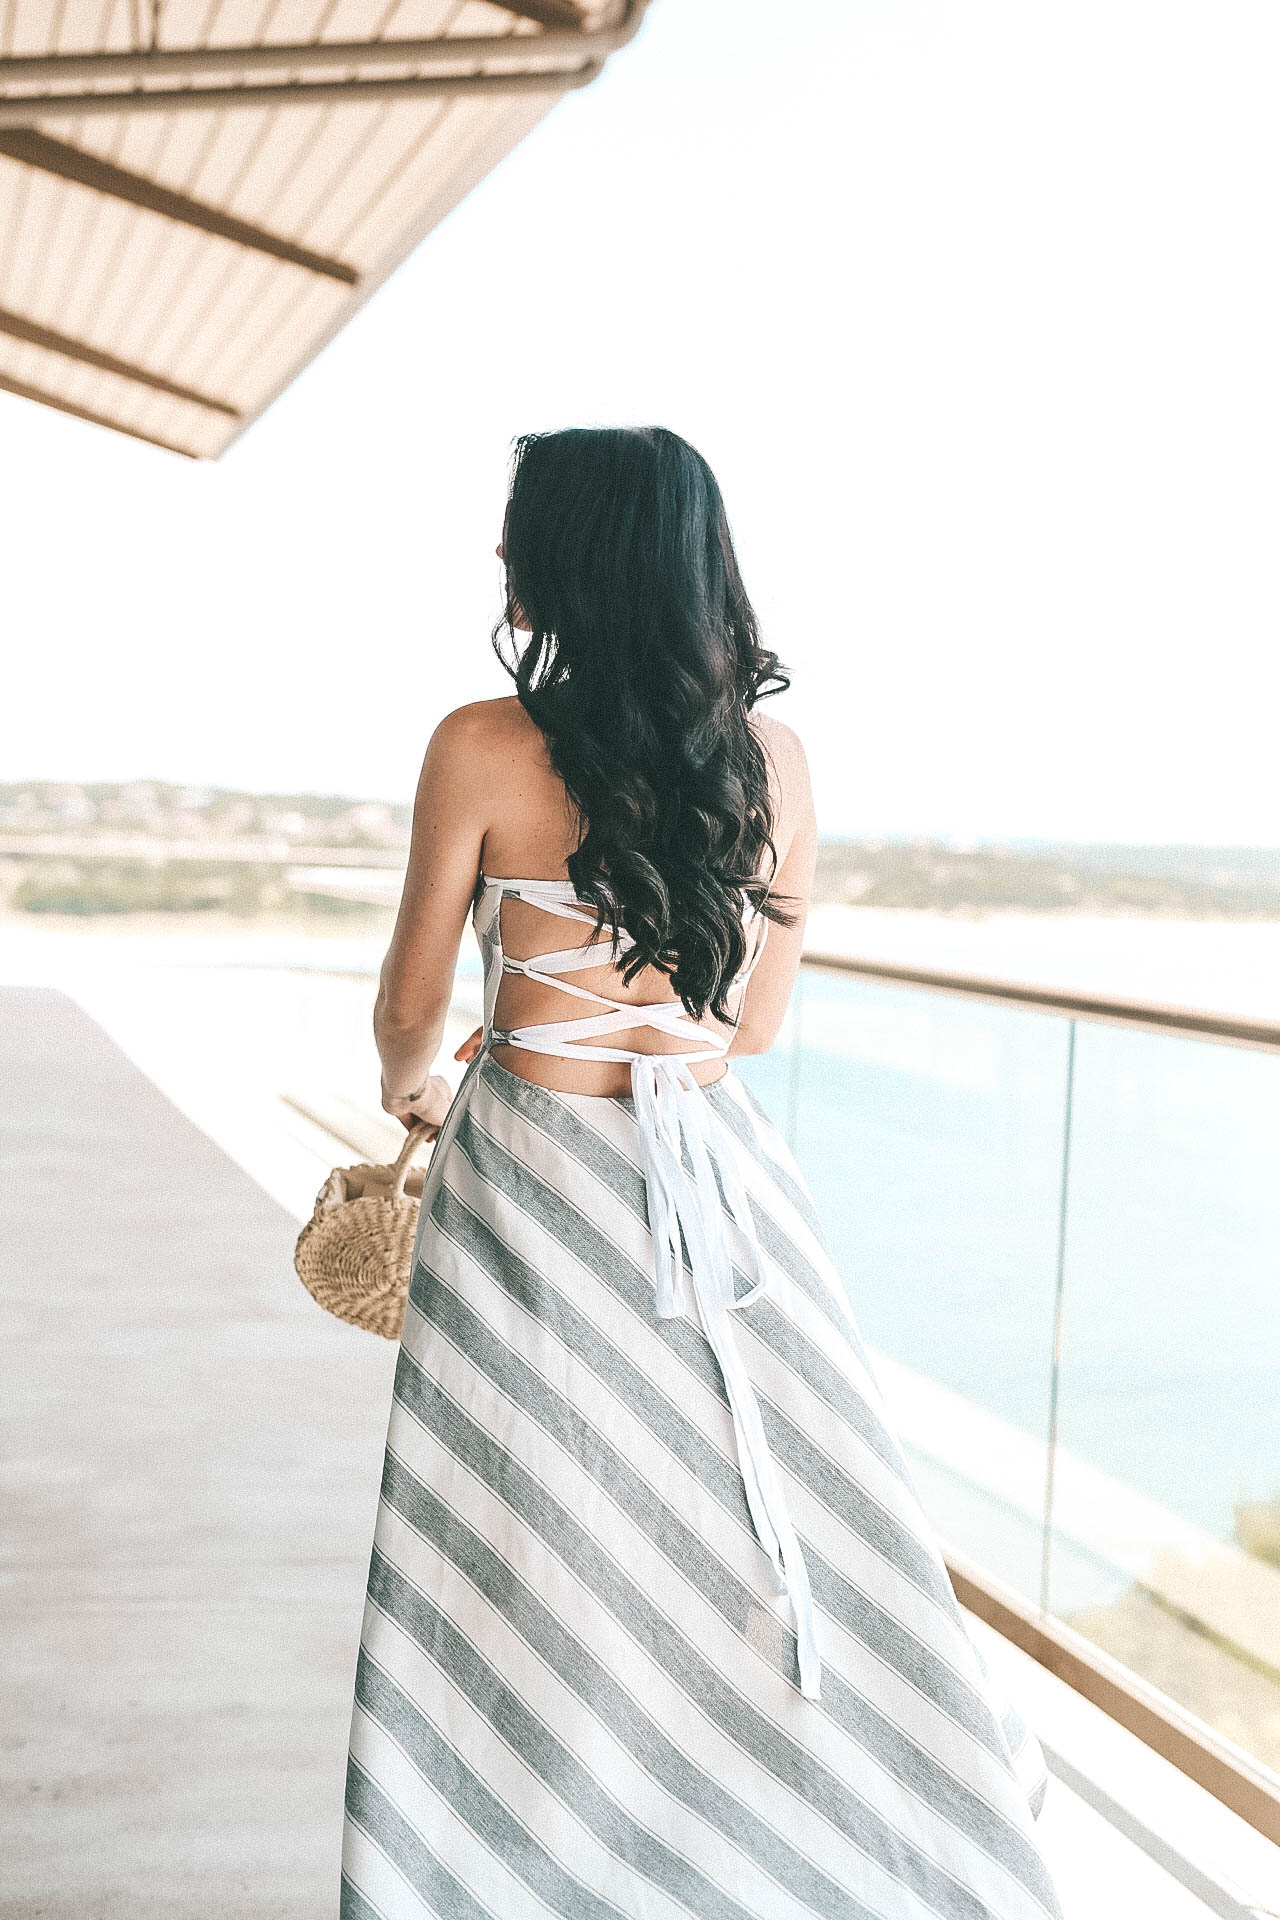 DTKAustin shares an affordable lace up maxi dress perfect for summer. Dress is AKIRA, bag is Clare V, shoes Steve Madden. | summer dresses for women | summer style | summer fashion | summer outfits for women | how to style a lace up dress || Dressed to Kill #fashion #style #womensoutfit #laceupdress #summerdress #summerfashion #summerstyle #dtkaustin - {The Lace-Up Dress of Your Dreams} featured by popular Austin fashion blogger, Dressed to Kill